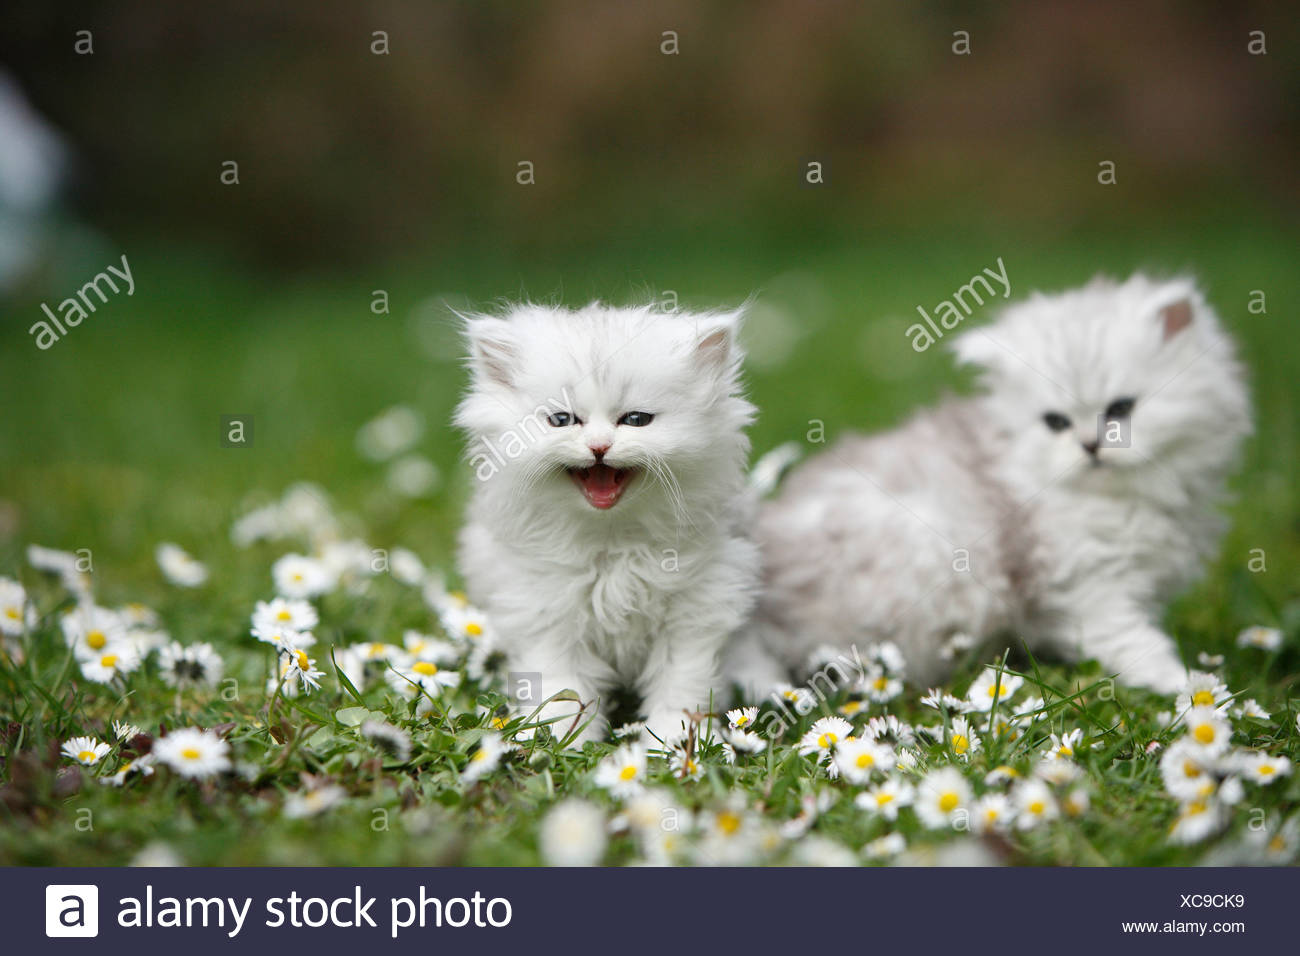 two kittens sitting in a daisied meadow - Stock Image